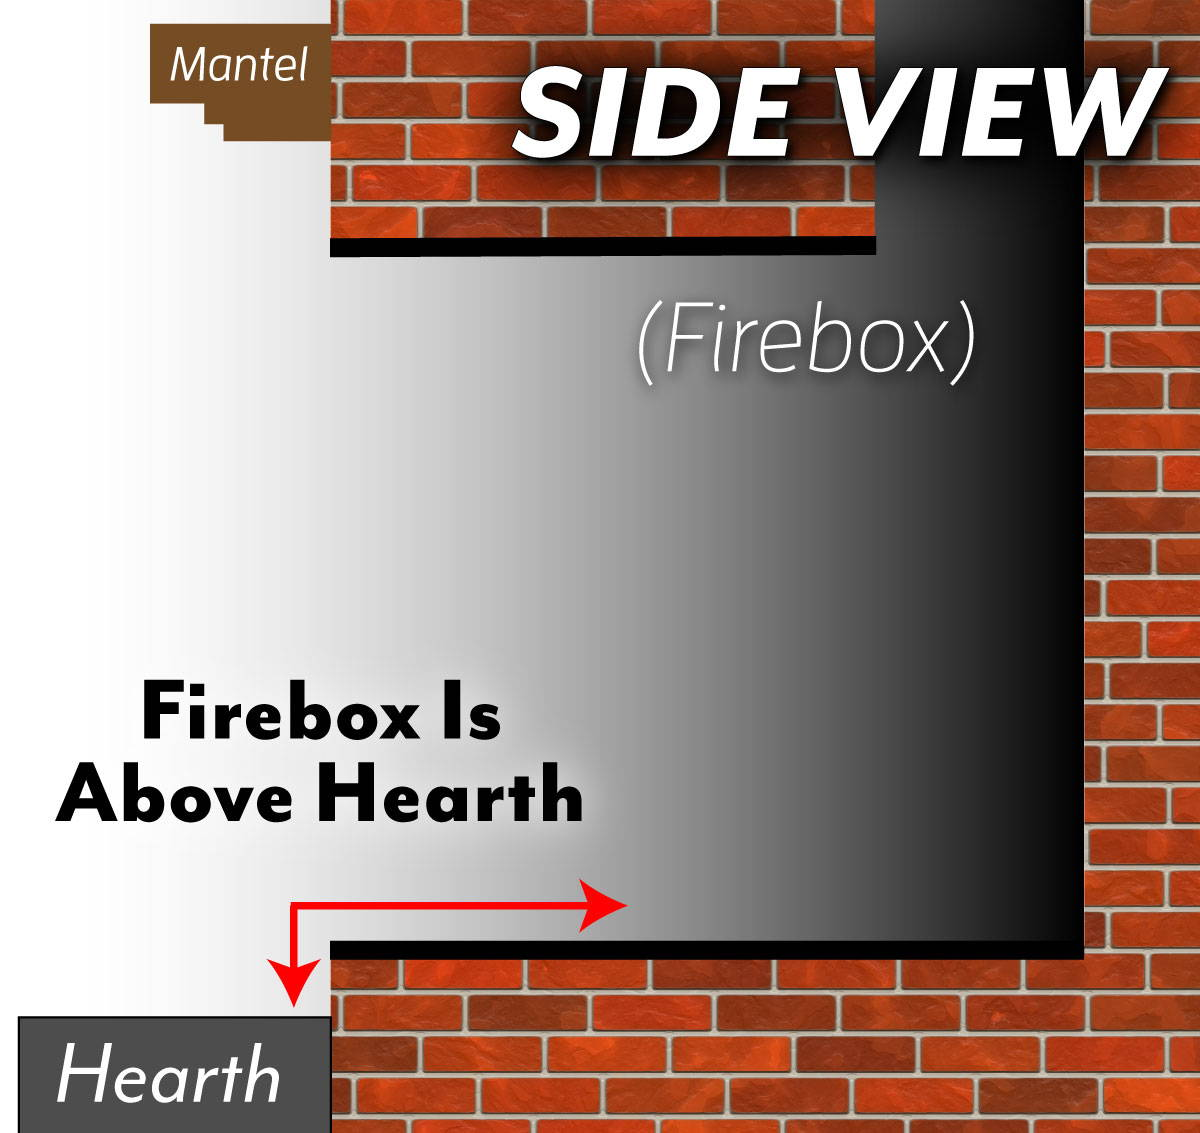 Fire Bed Above Hearth -  Side View